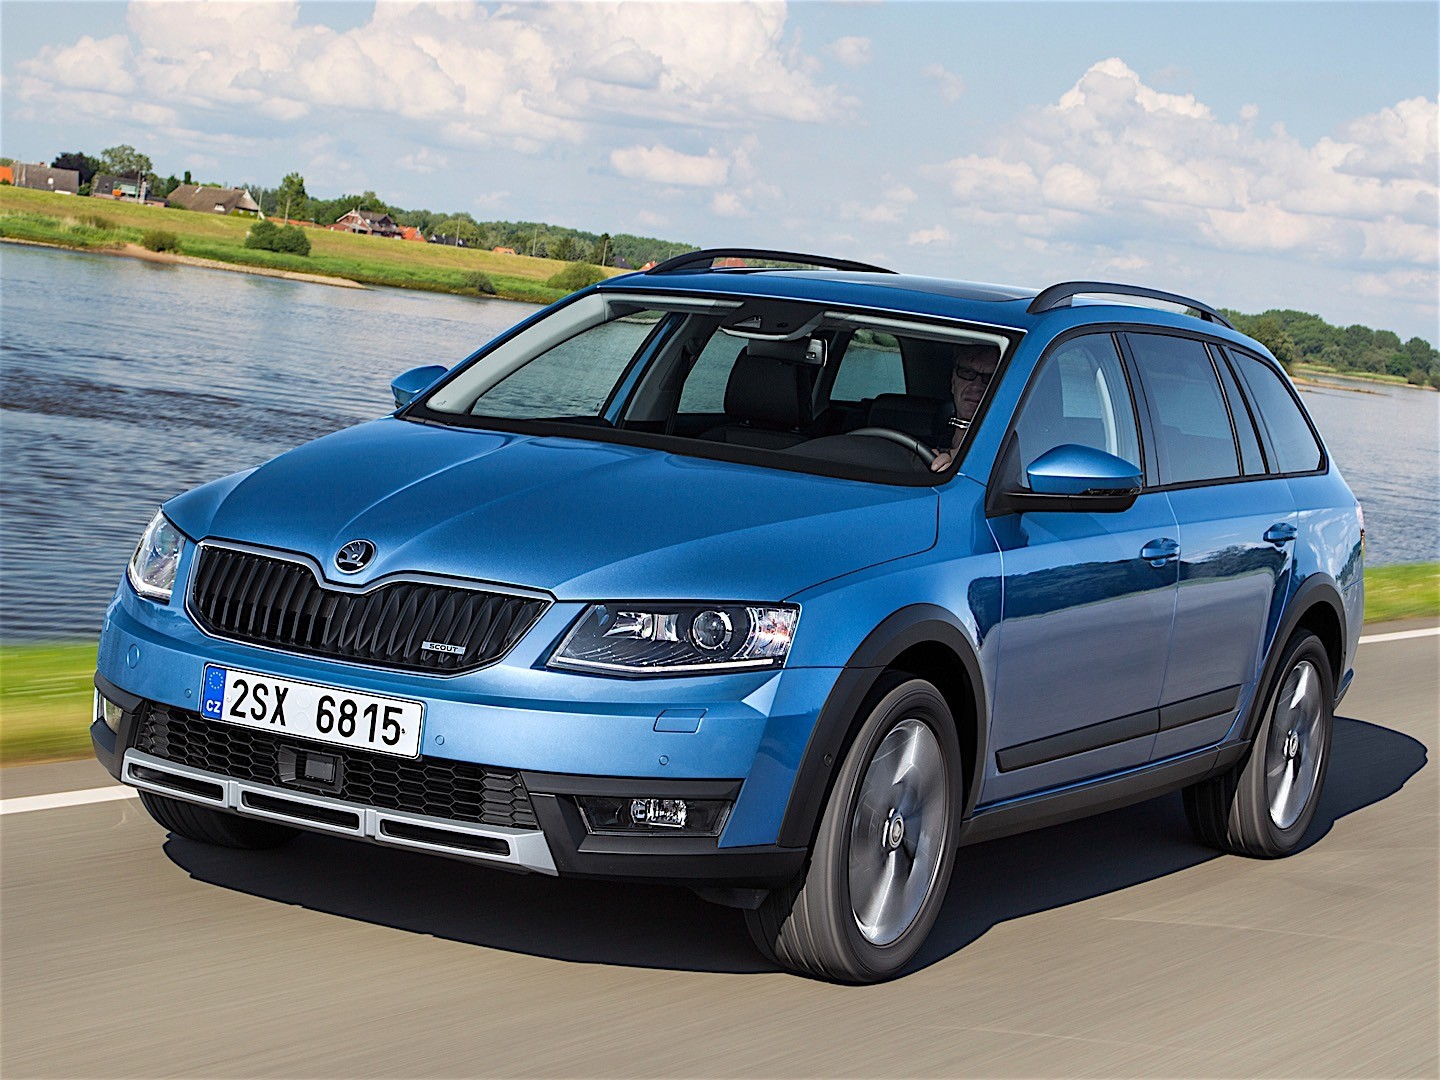 skoda octavia scout specs 2015 2016 2017 2018. Black Bedroom Furniture Sets. Home Design Ideas